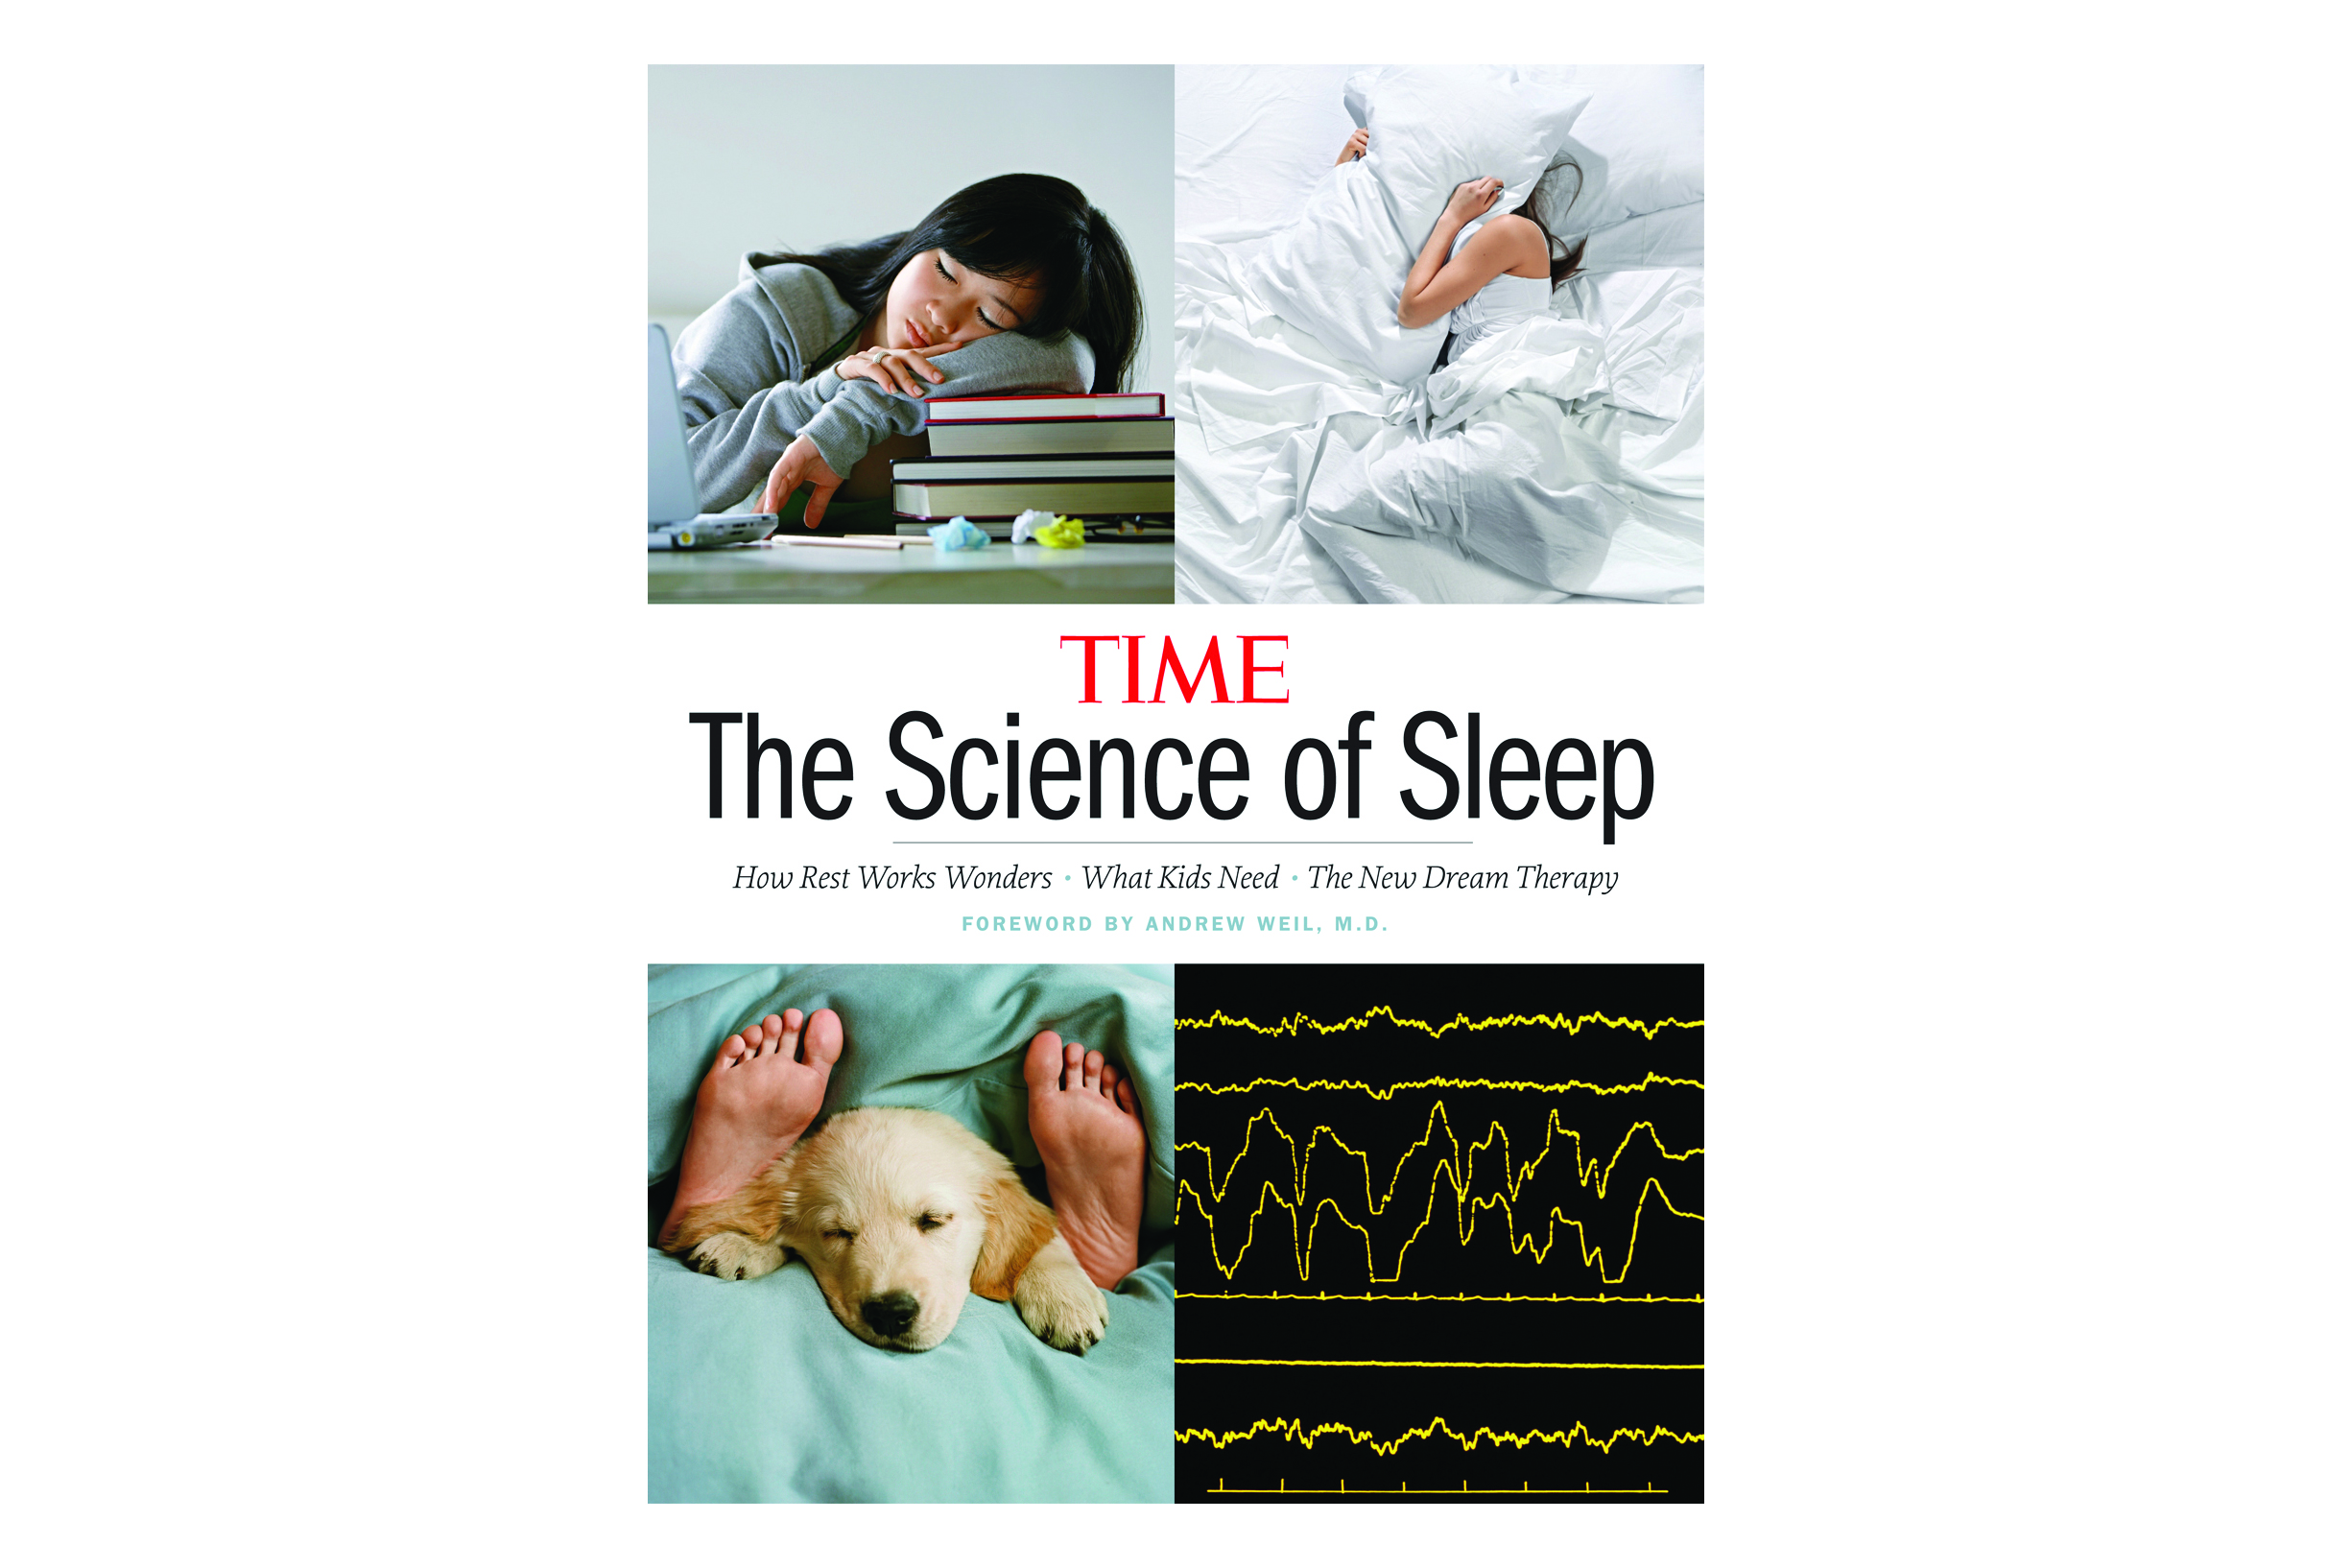 how dream therapy can change your life How Dream Therapy Can Change Your Life  science of sleep